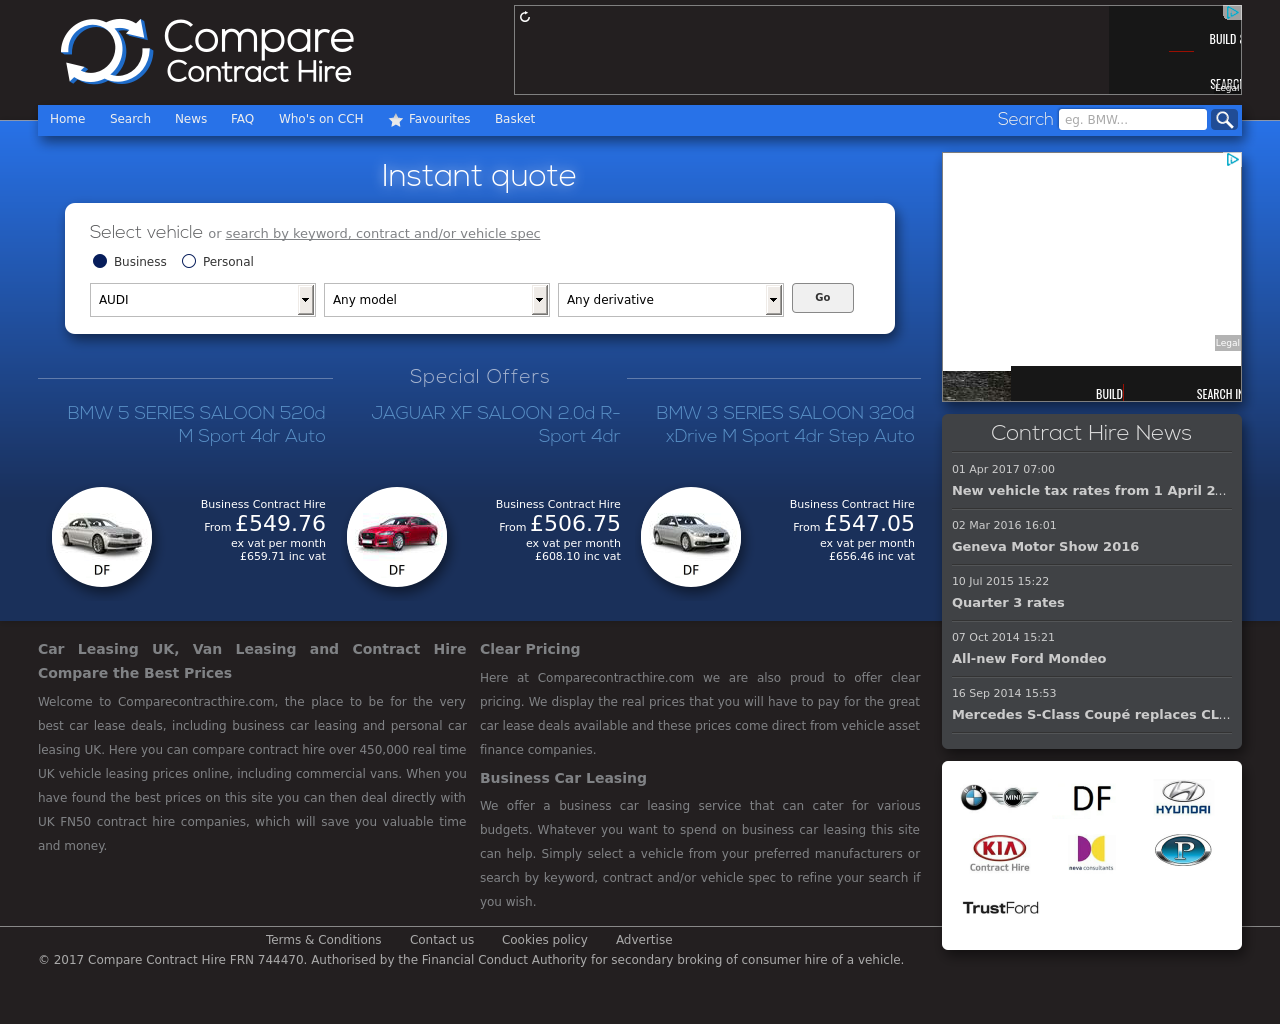 Compare-Contract-Hire-Advertising-Reviews-Pricing